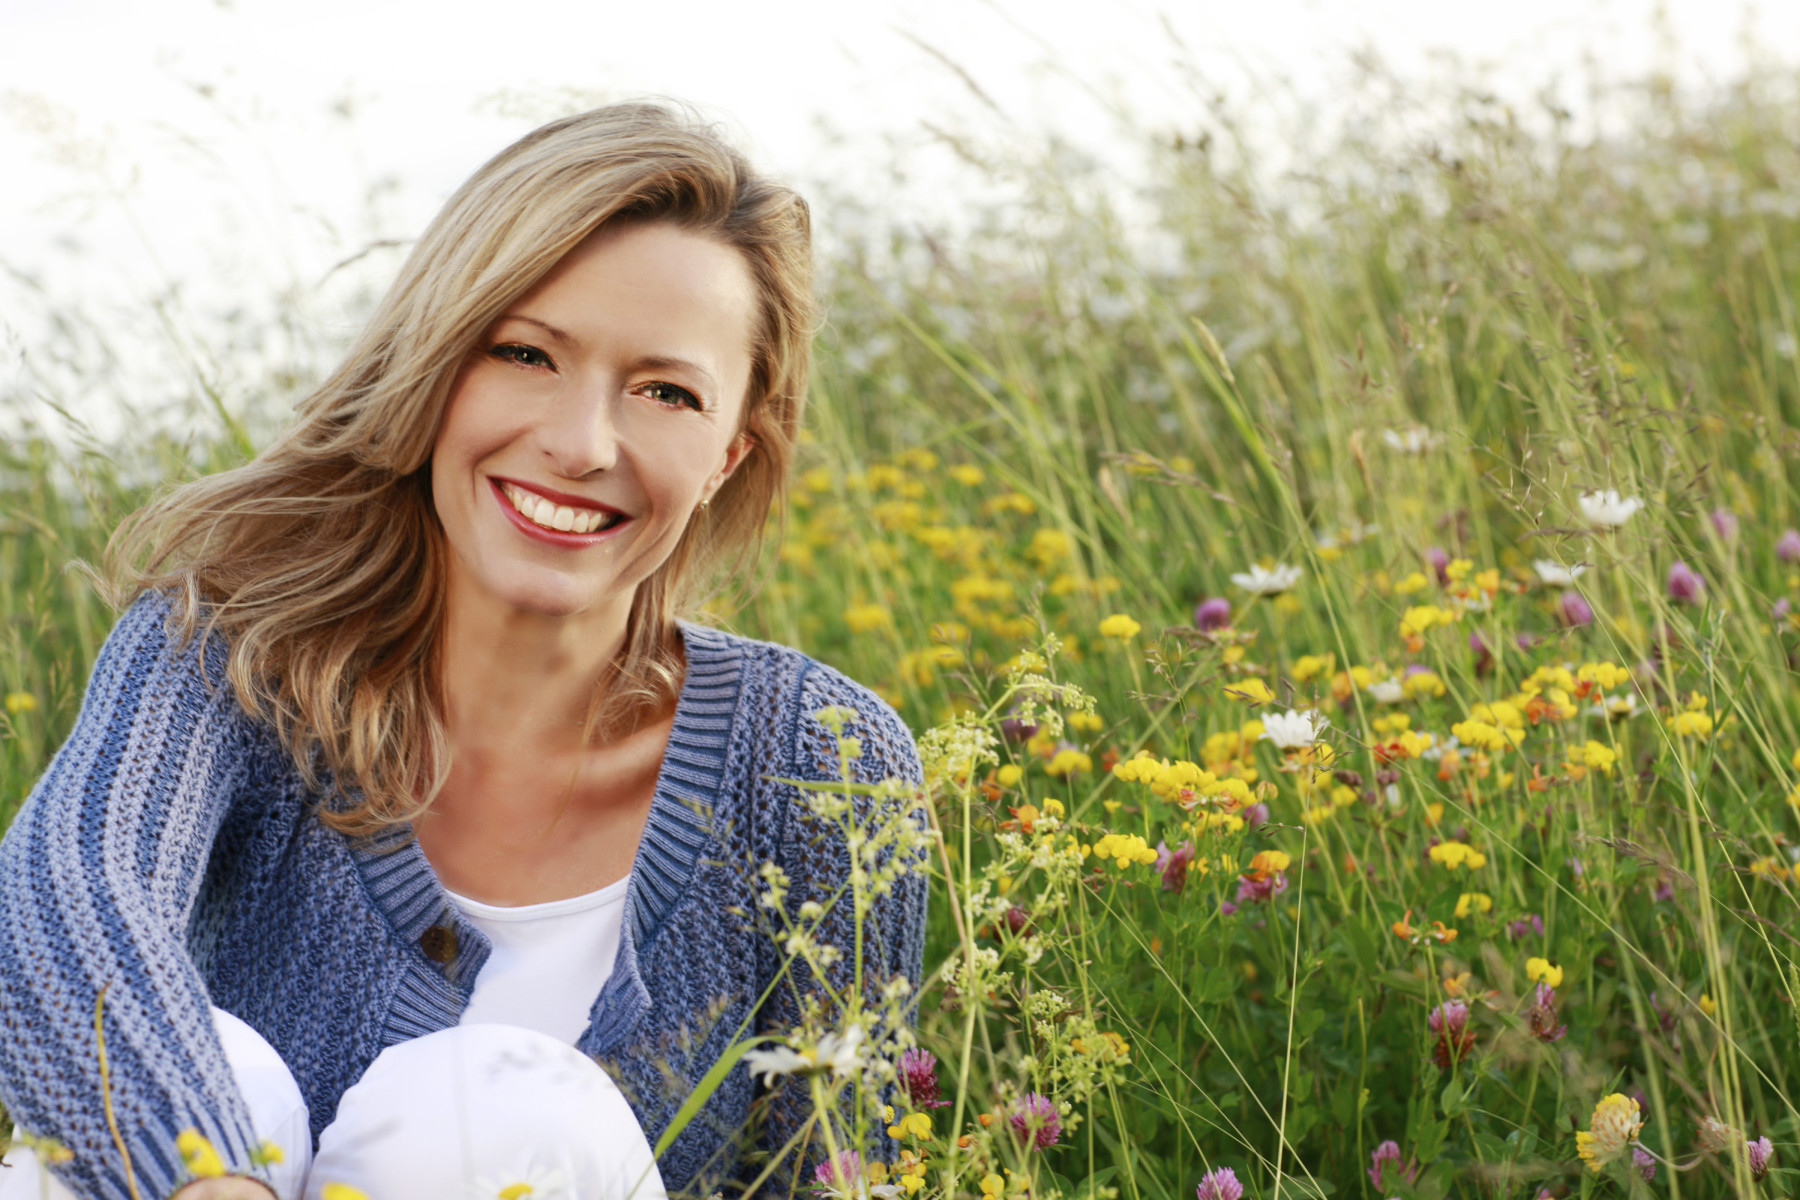 Woman with a bright white smile sitting in a meadow